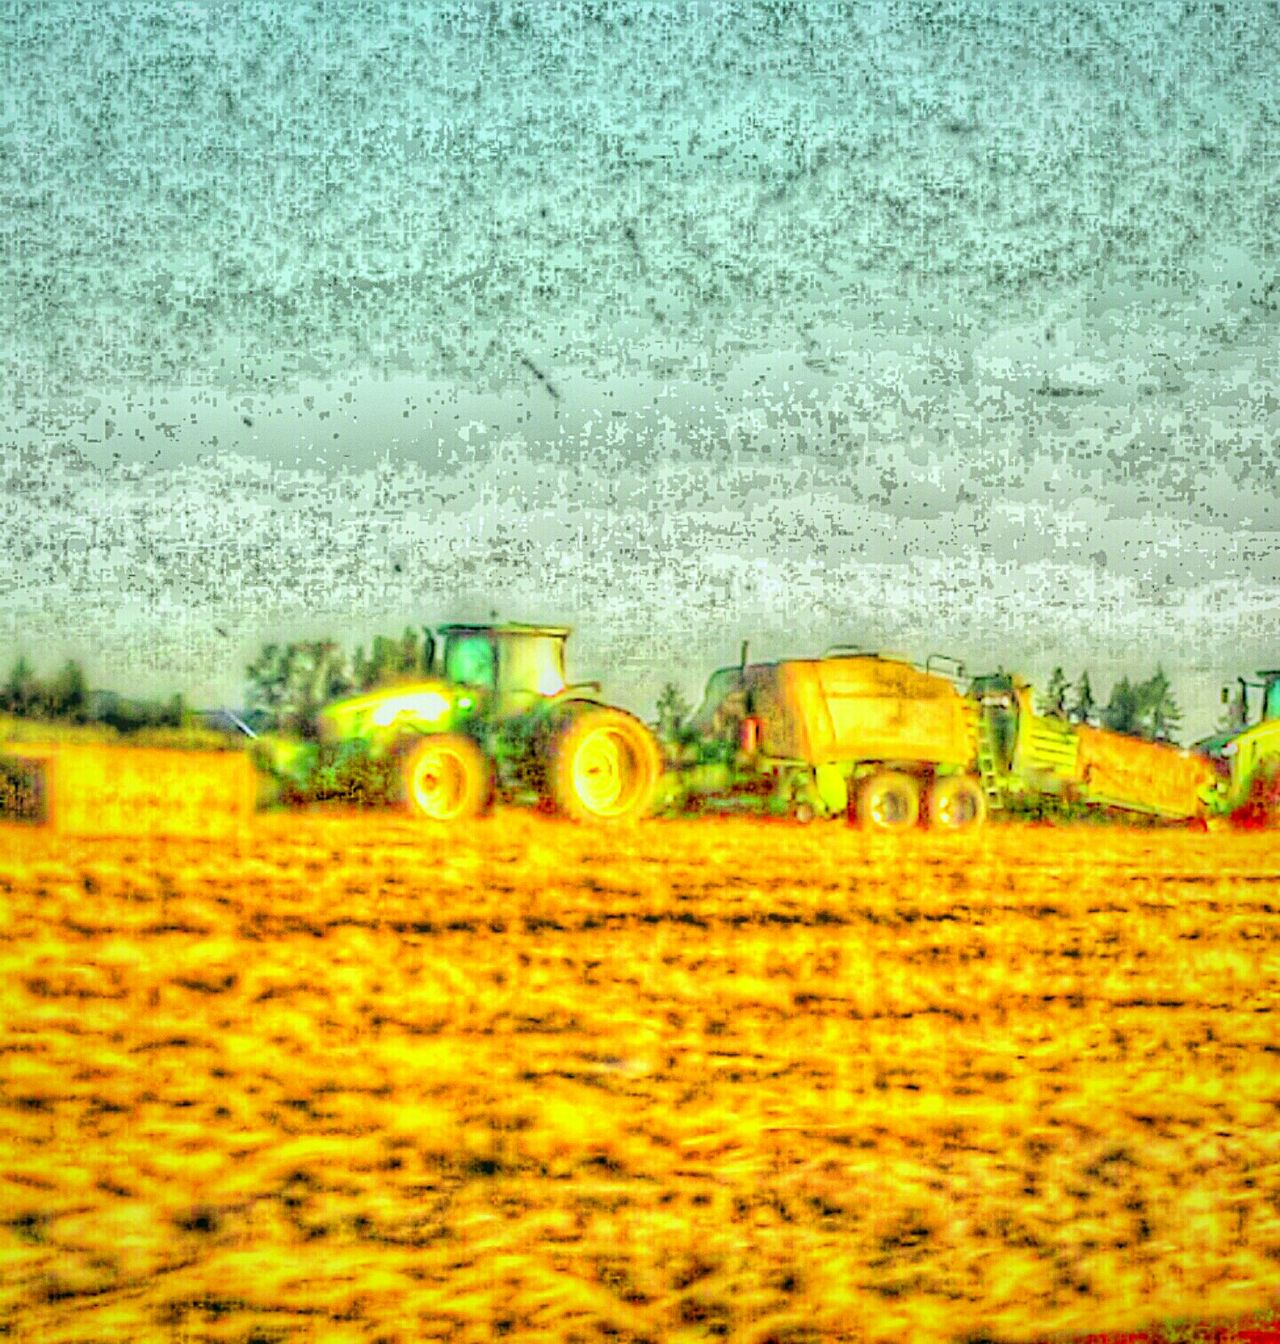 Johndeere Tractors Among Us Farm Life Farmers At Work Hard At Work On The Earth On The Job On The Way Countryside Counrtylife Contry Road Addicted To Photography I❤oregon UNPOSED Johndeeregreen Johndeeretractor Hay Bales Early Morning Imagine Your World Photograph Your Life Aroundtheworld I Like My Own Pictures!✌😎